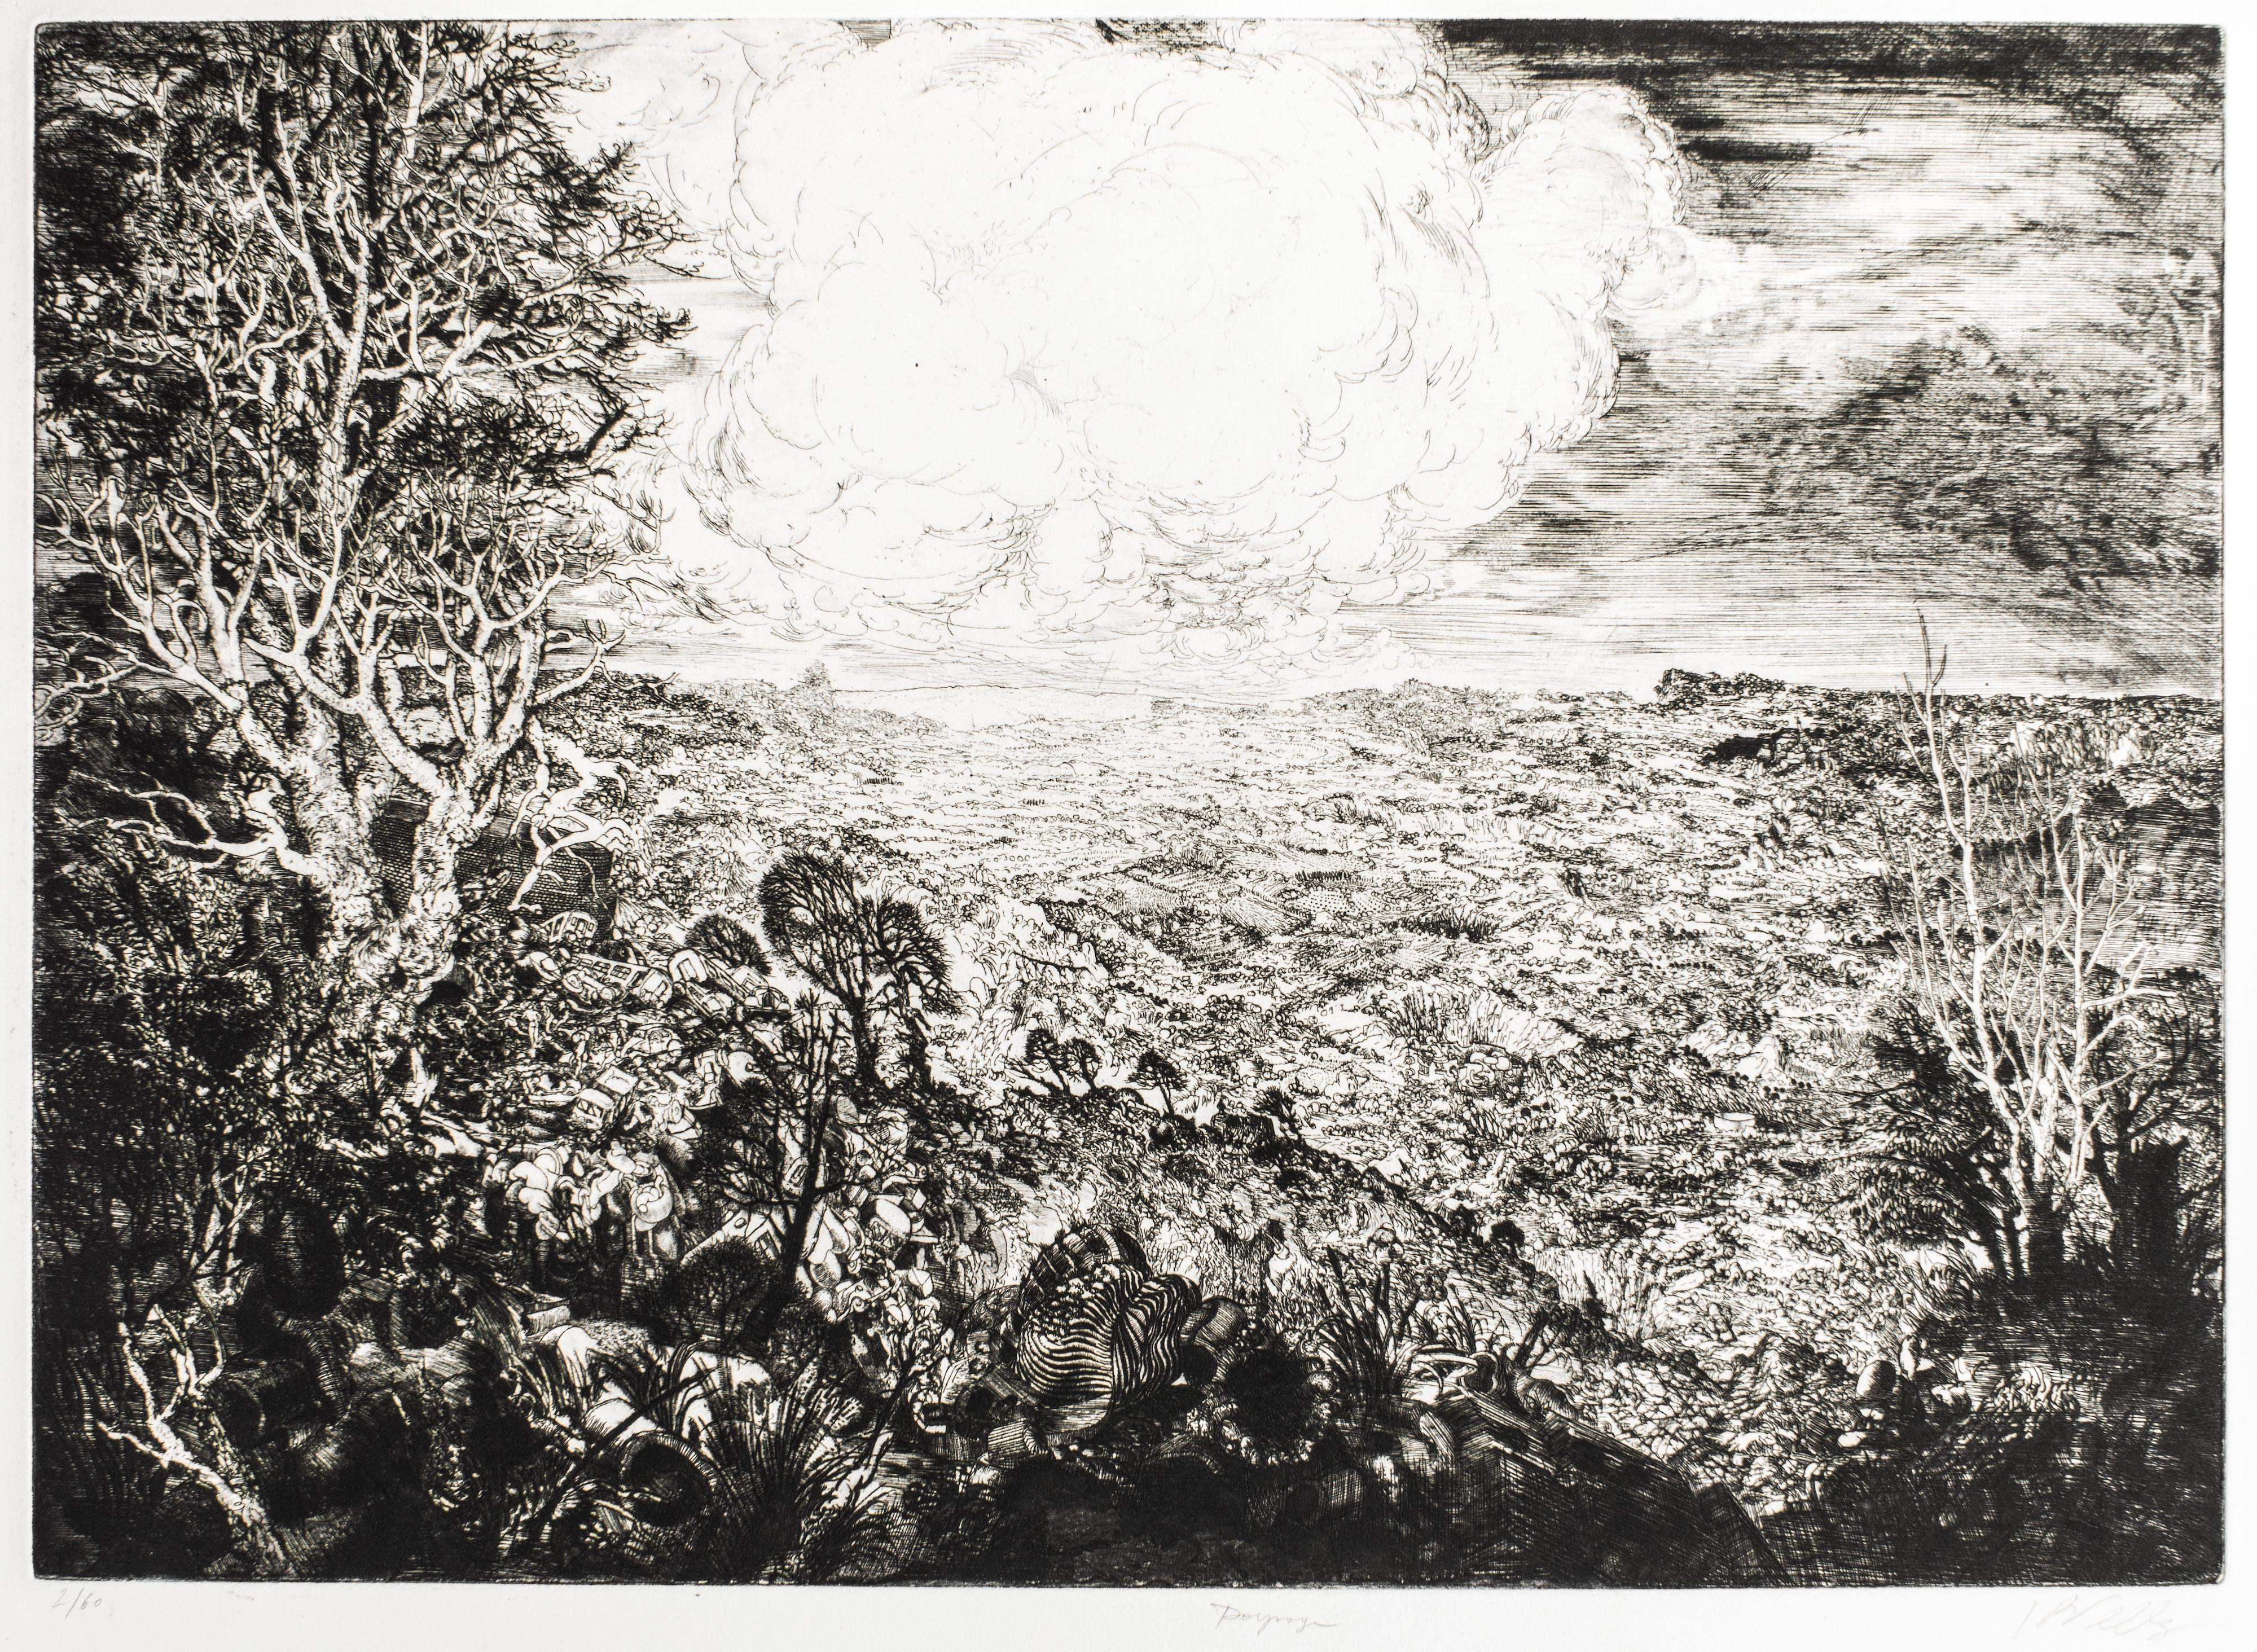 Landscape with Cars - Original Etching by J.P. Velly - 1969